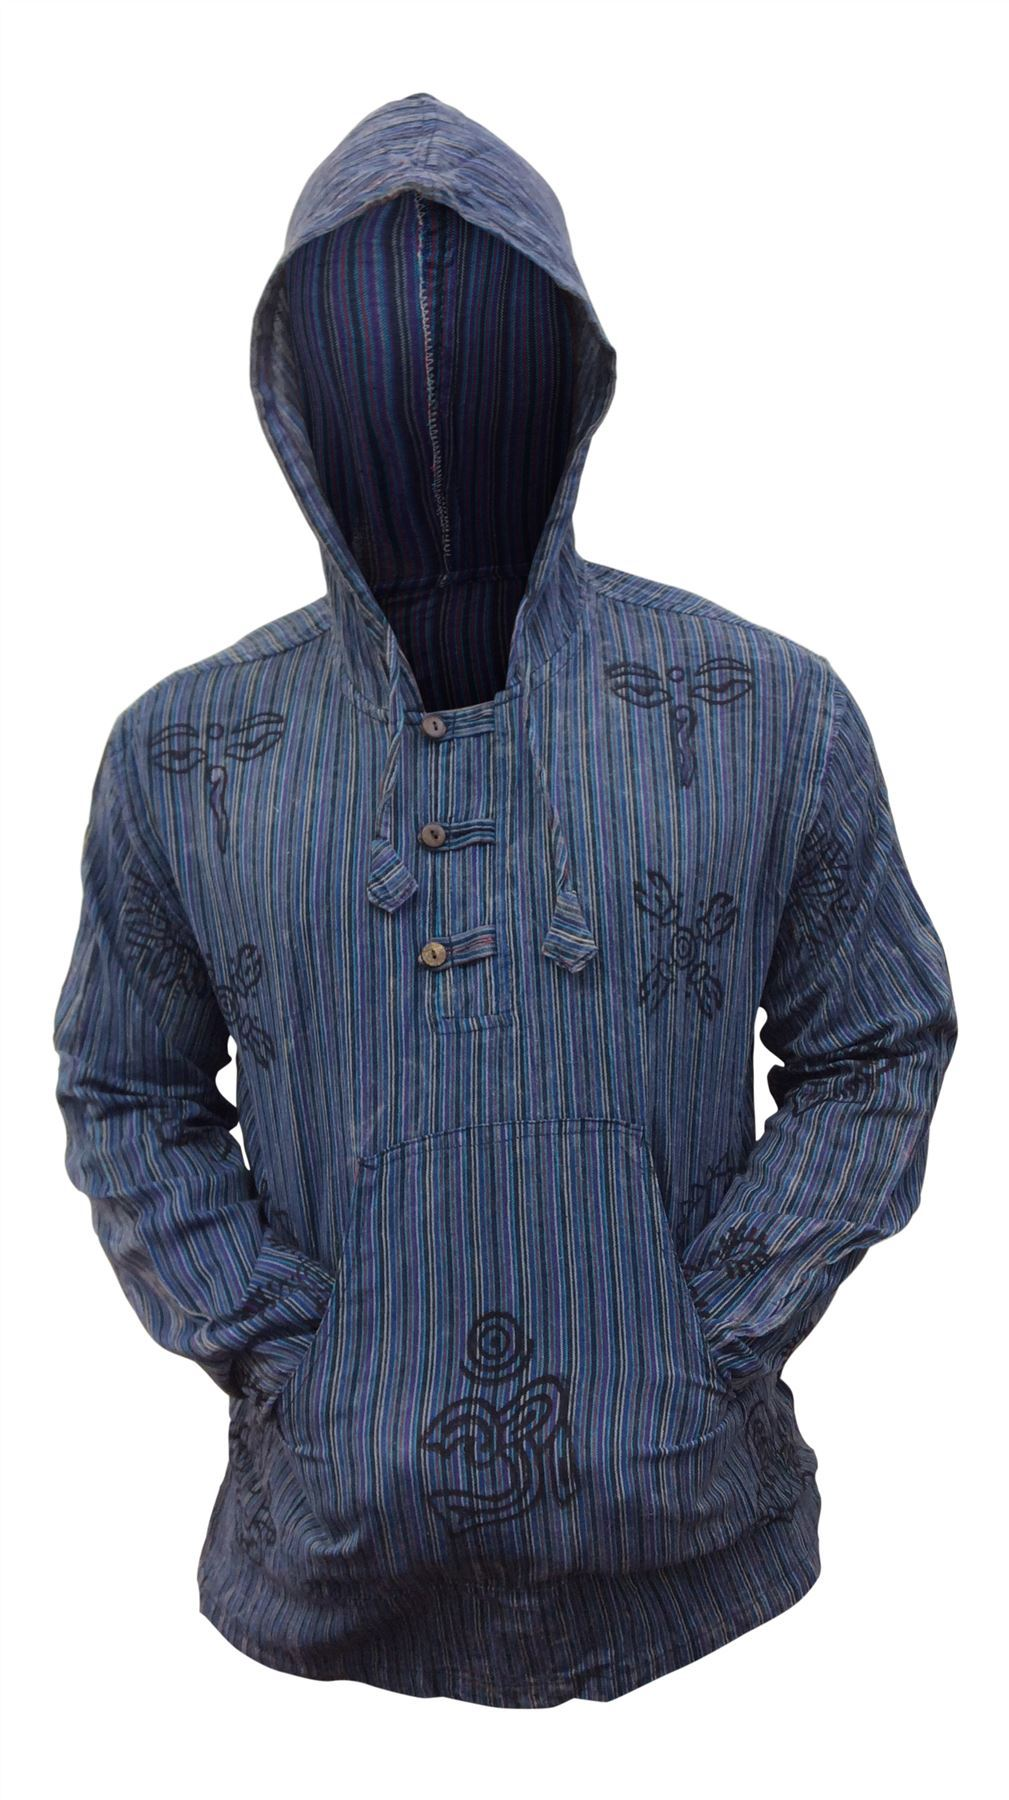 Mens-Stonewashed-Striped-Hooded-Grandad-Shirt-Long-Sleeve-Casual-Hooded-Top thumbnail 6